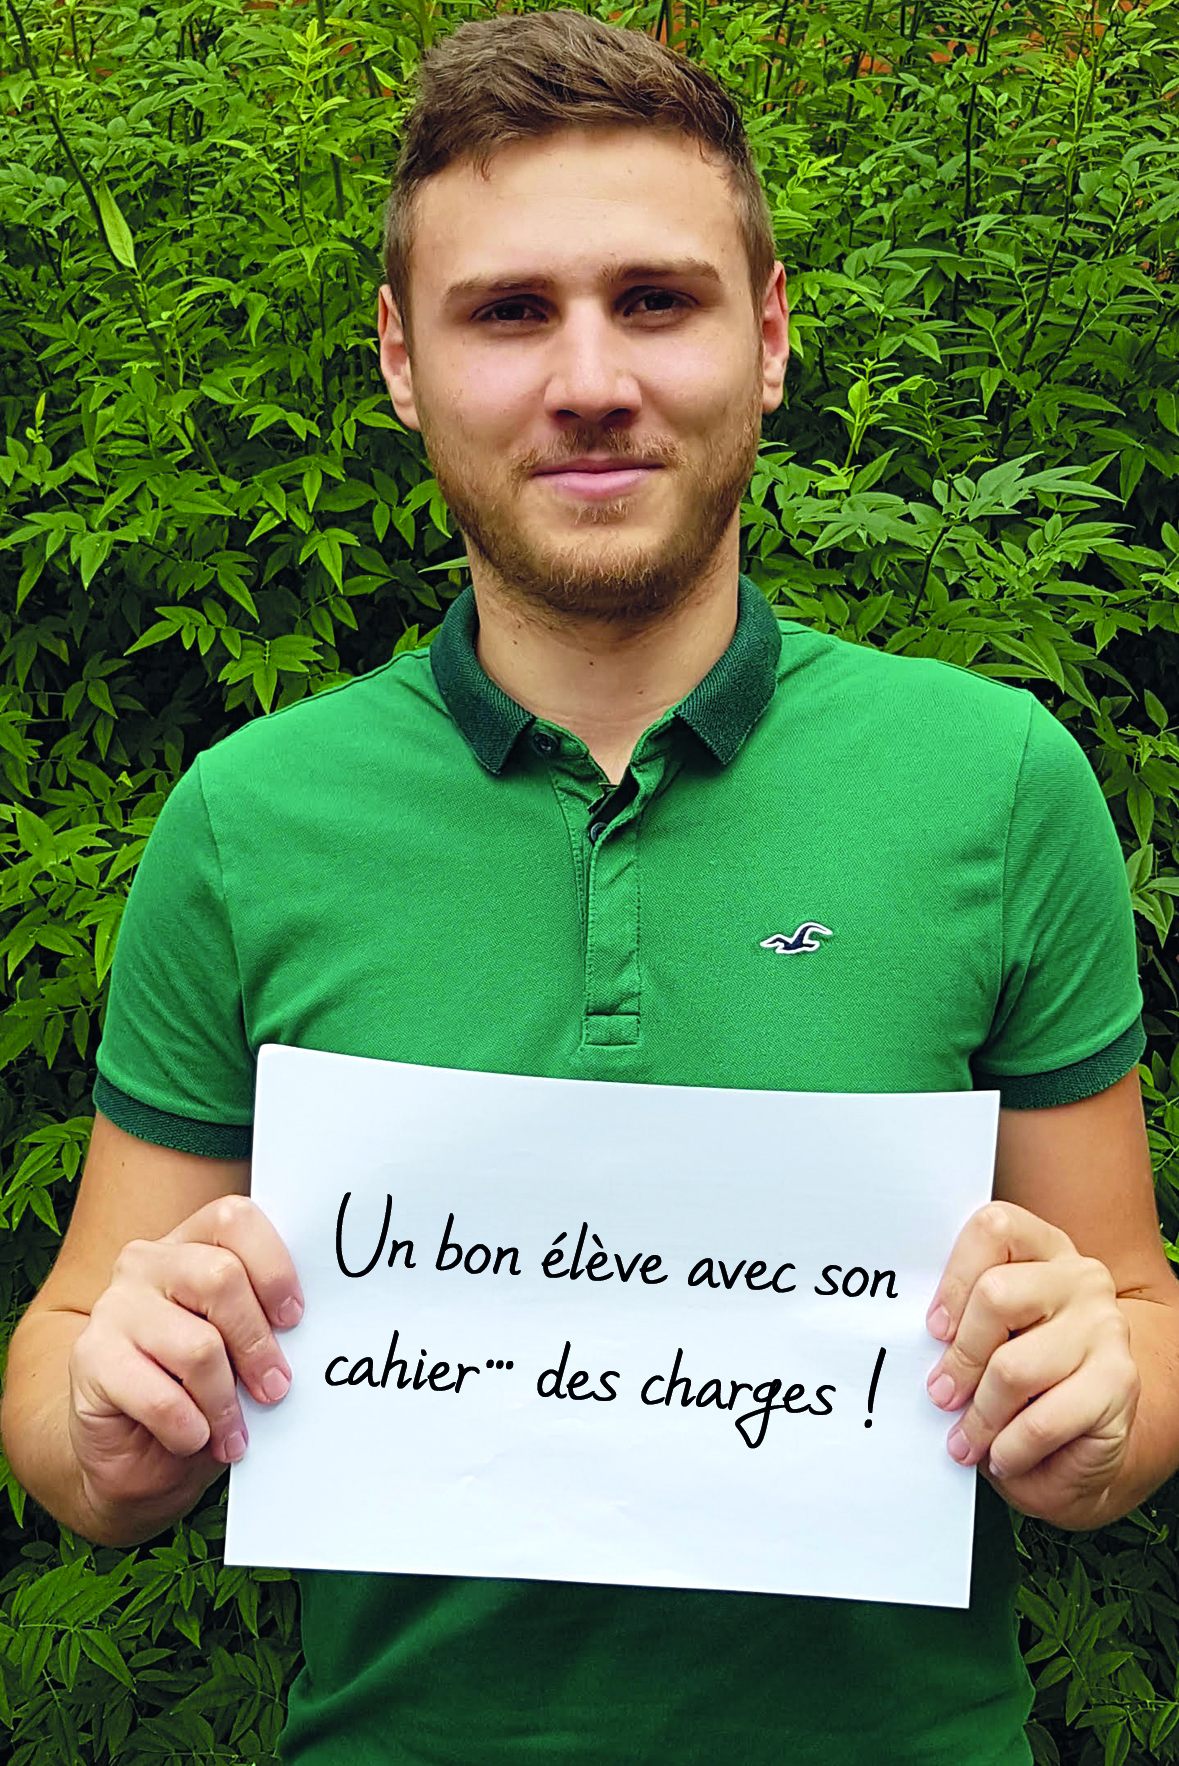 Bodéva, agence digitale Montpellier 34 - Pierre Heraud, web developer